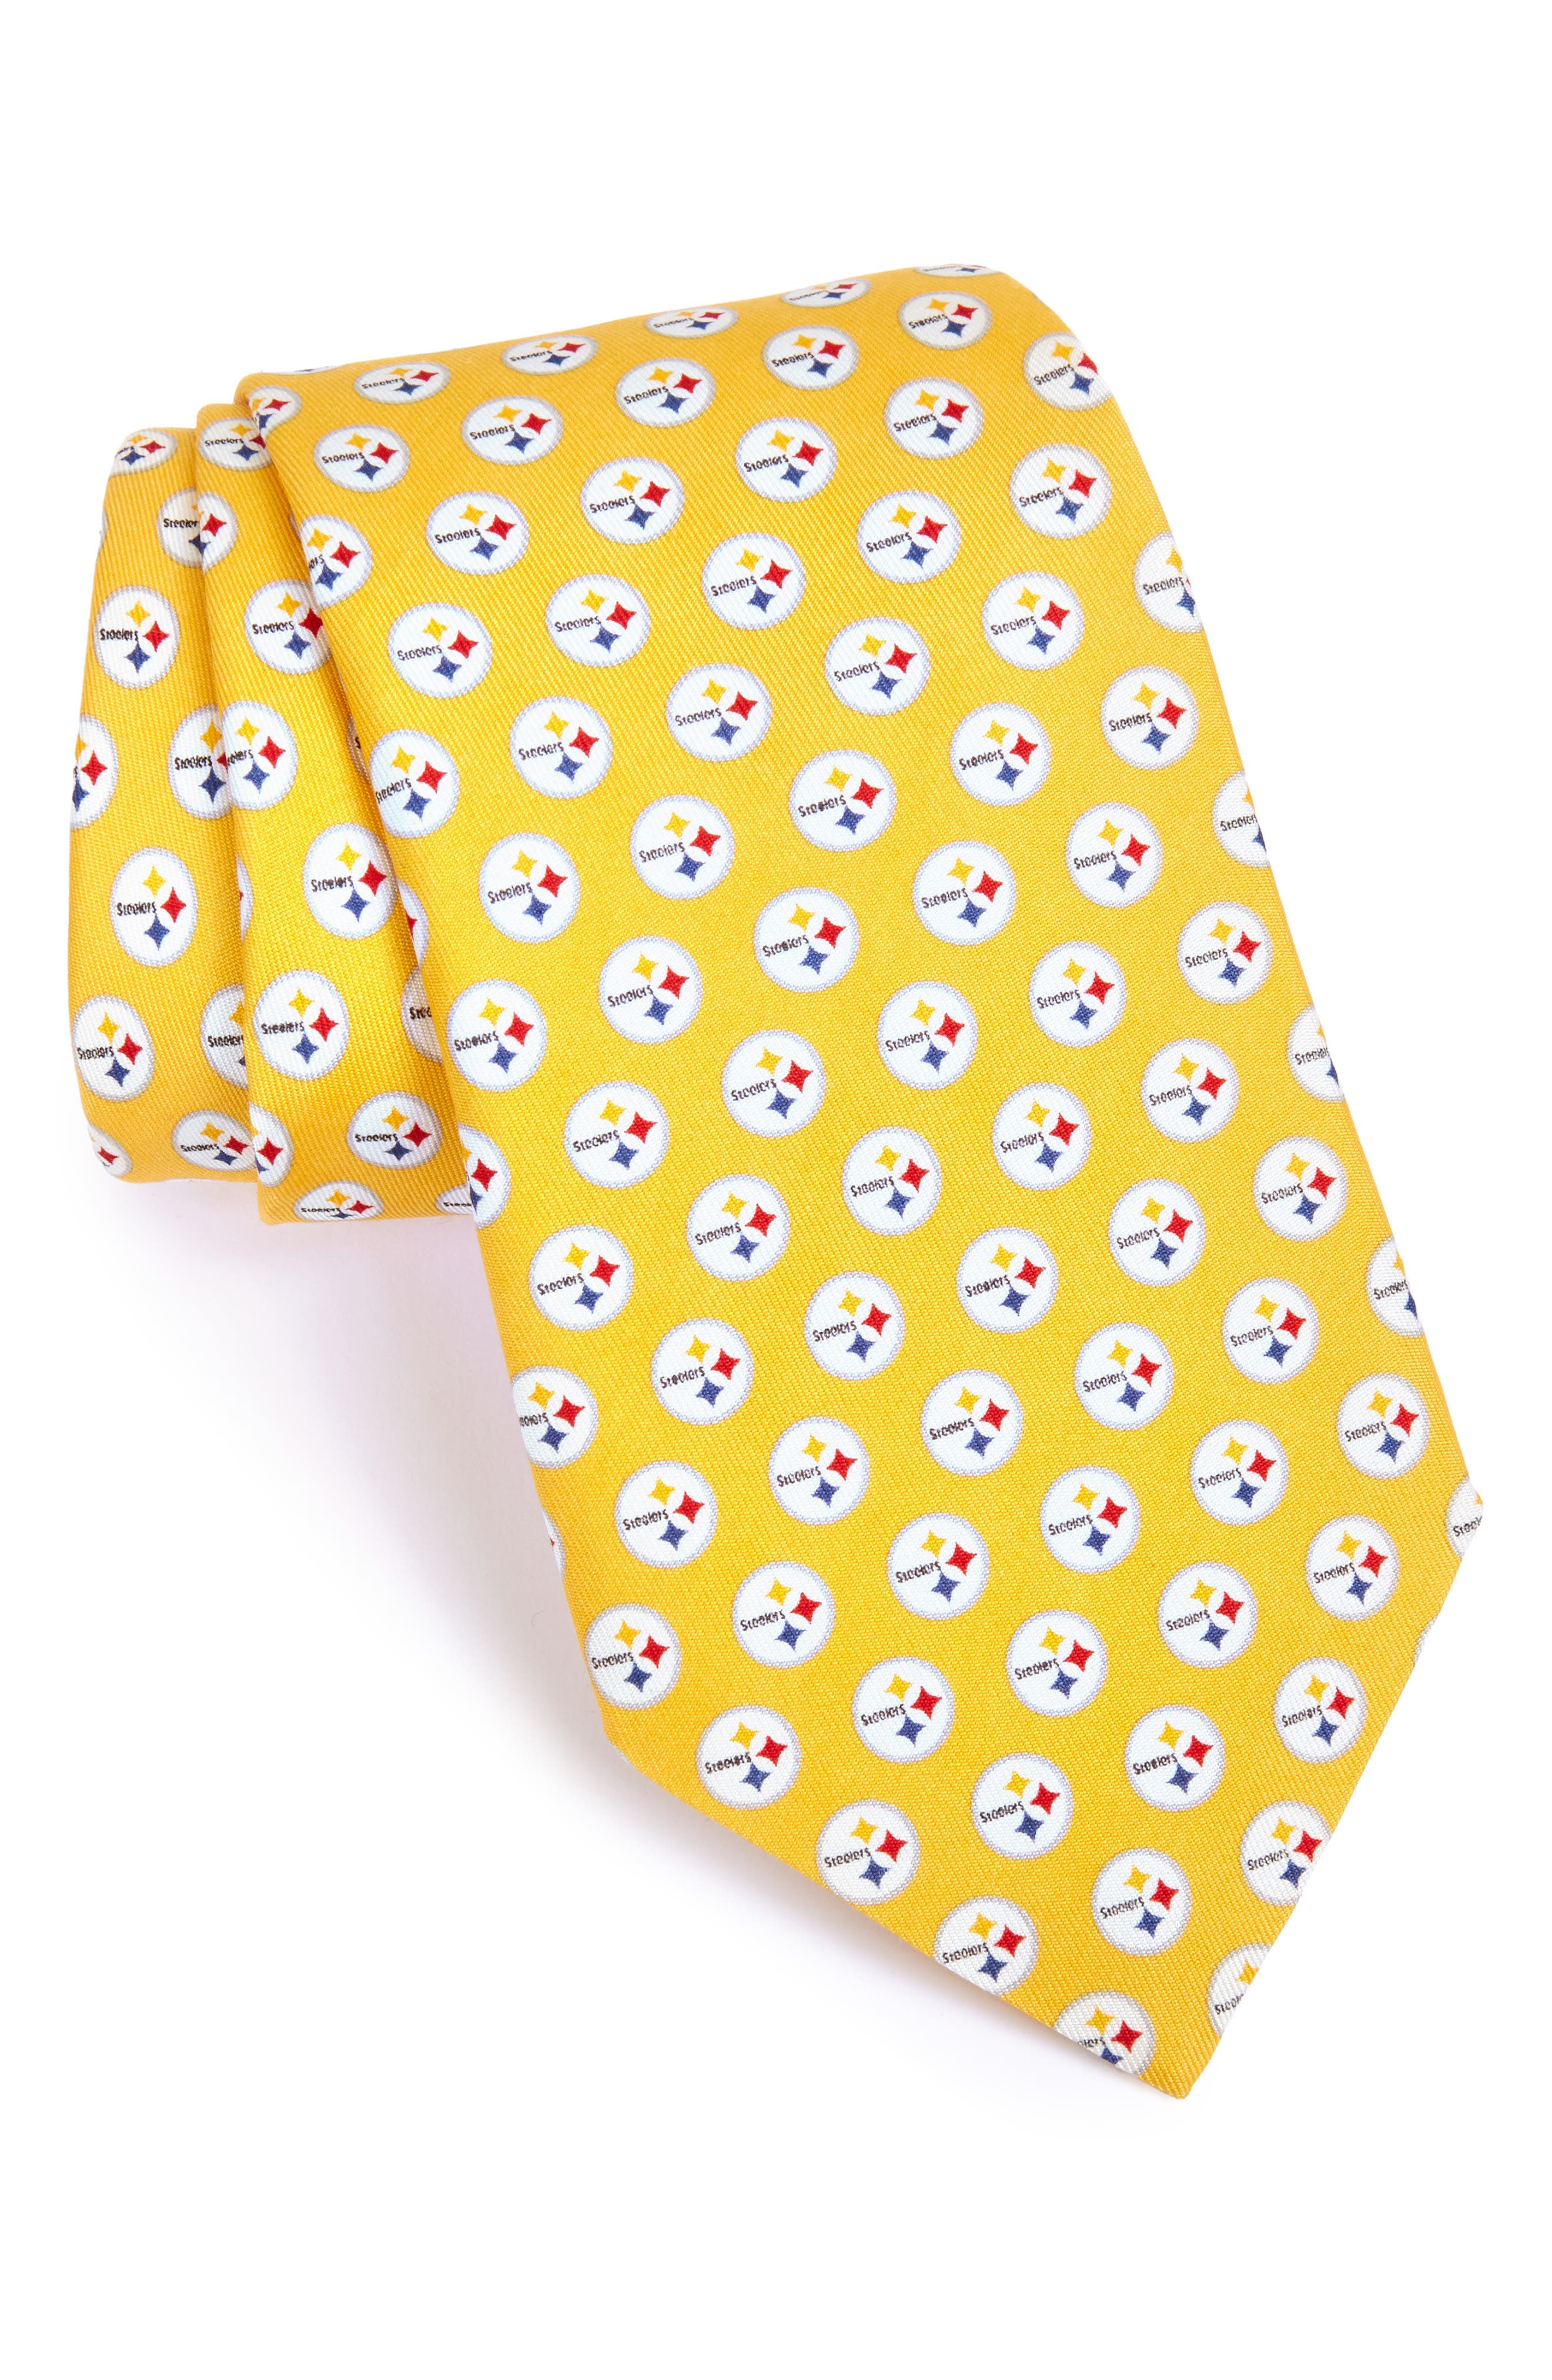 'Pittsburgh Steelers - NFL' Woven Silk Tie,                             Main thumbnail 1, color,                             720